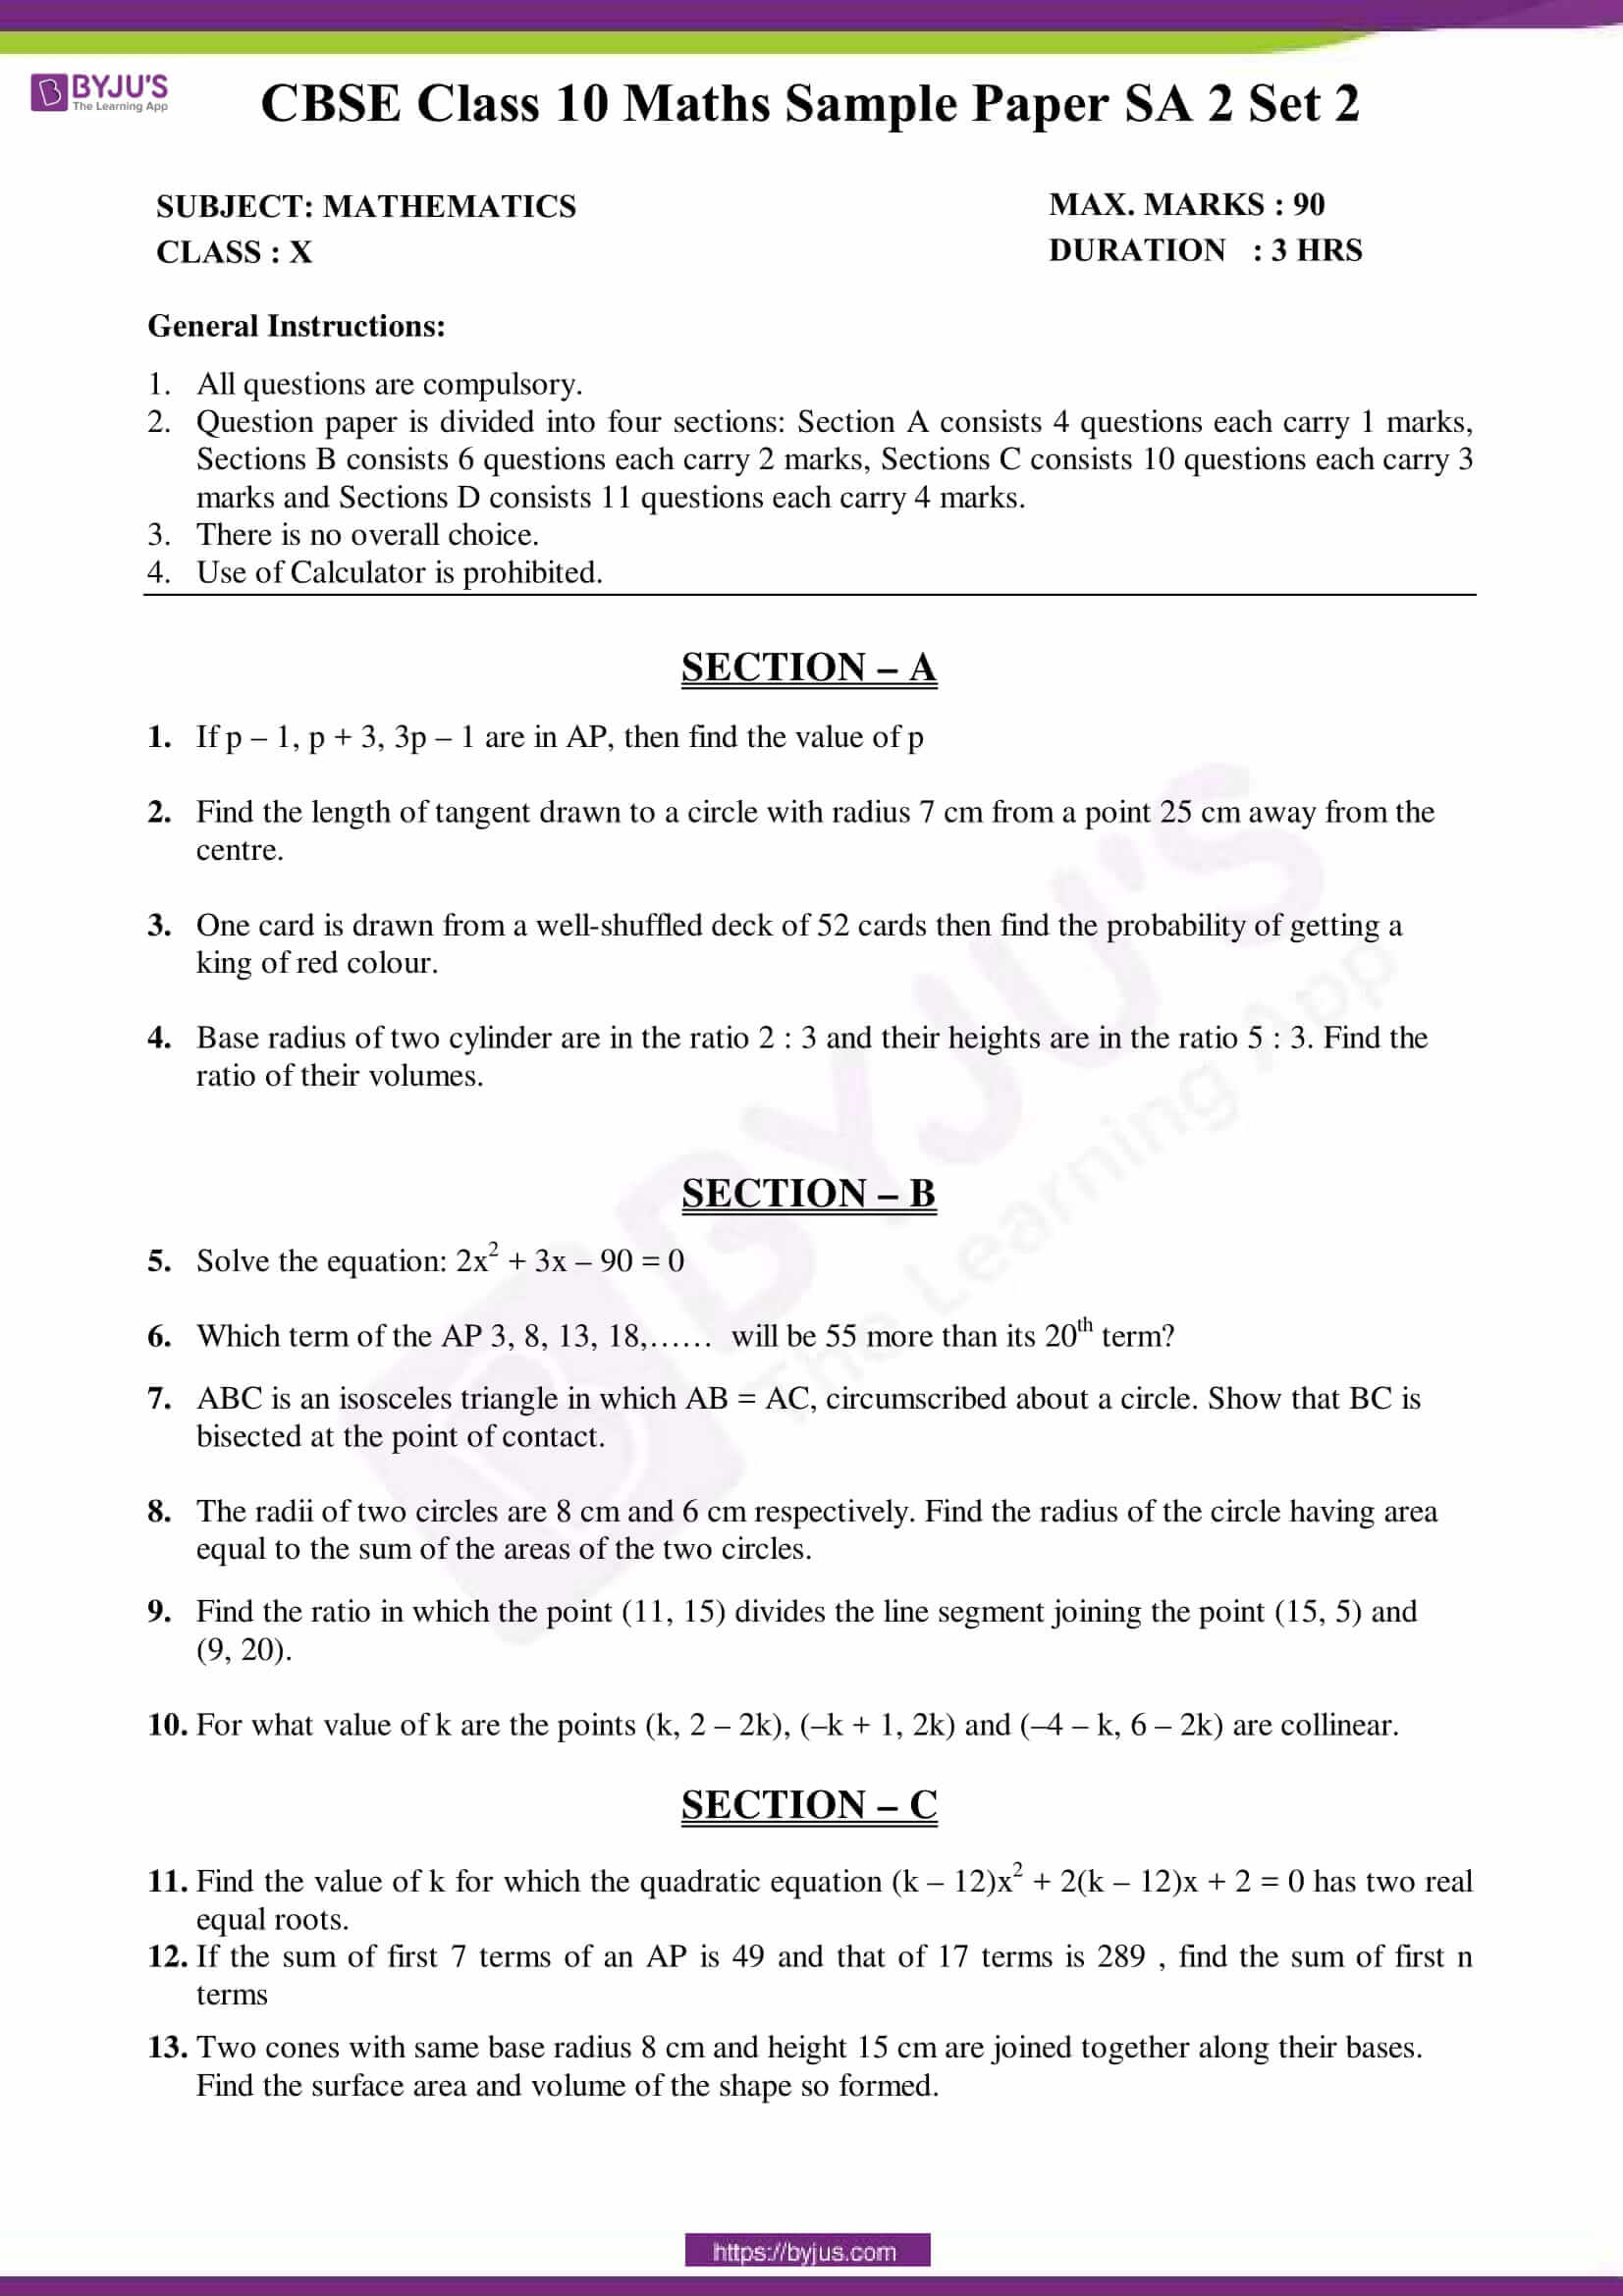 cbse sample paper class 10 maths sa 2 set 2